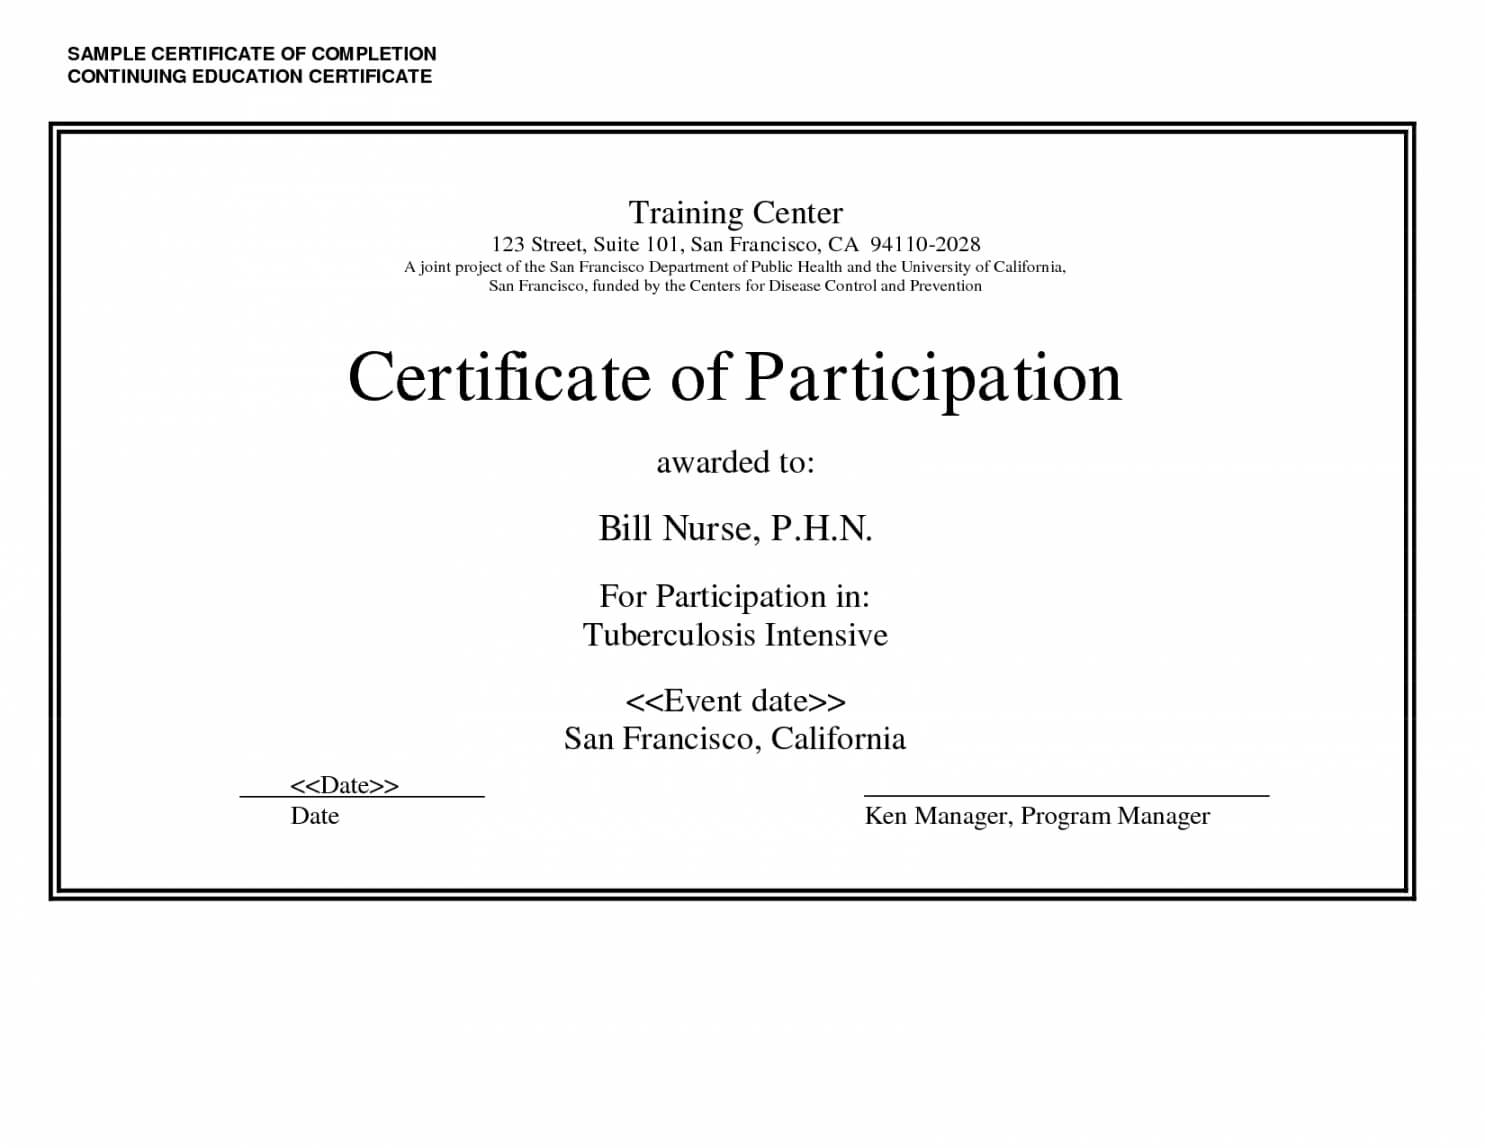 Printable Sample Certificate Of Completion Continuing With Continuing Education Certificate Template